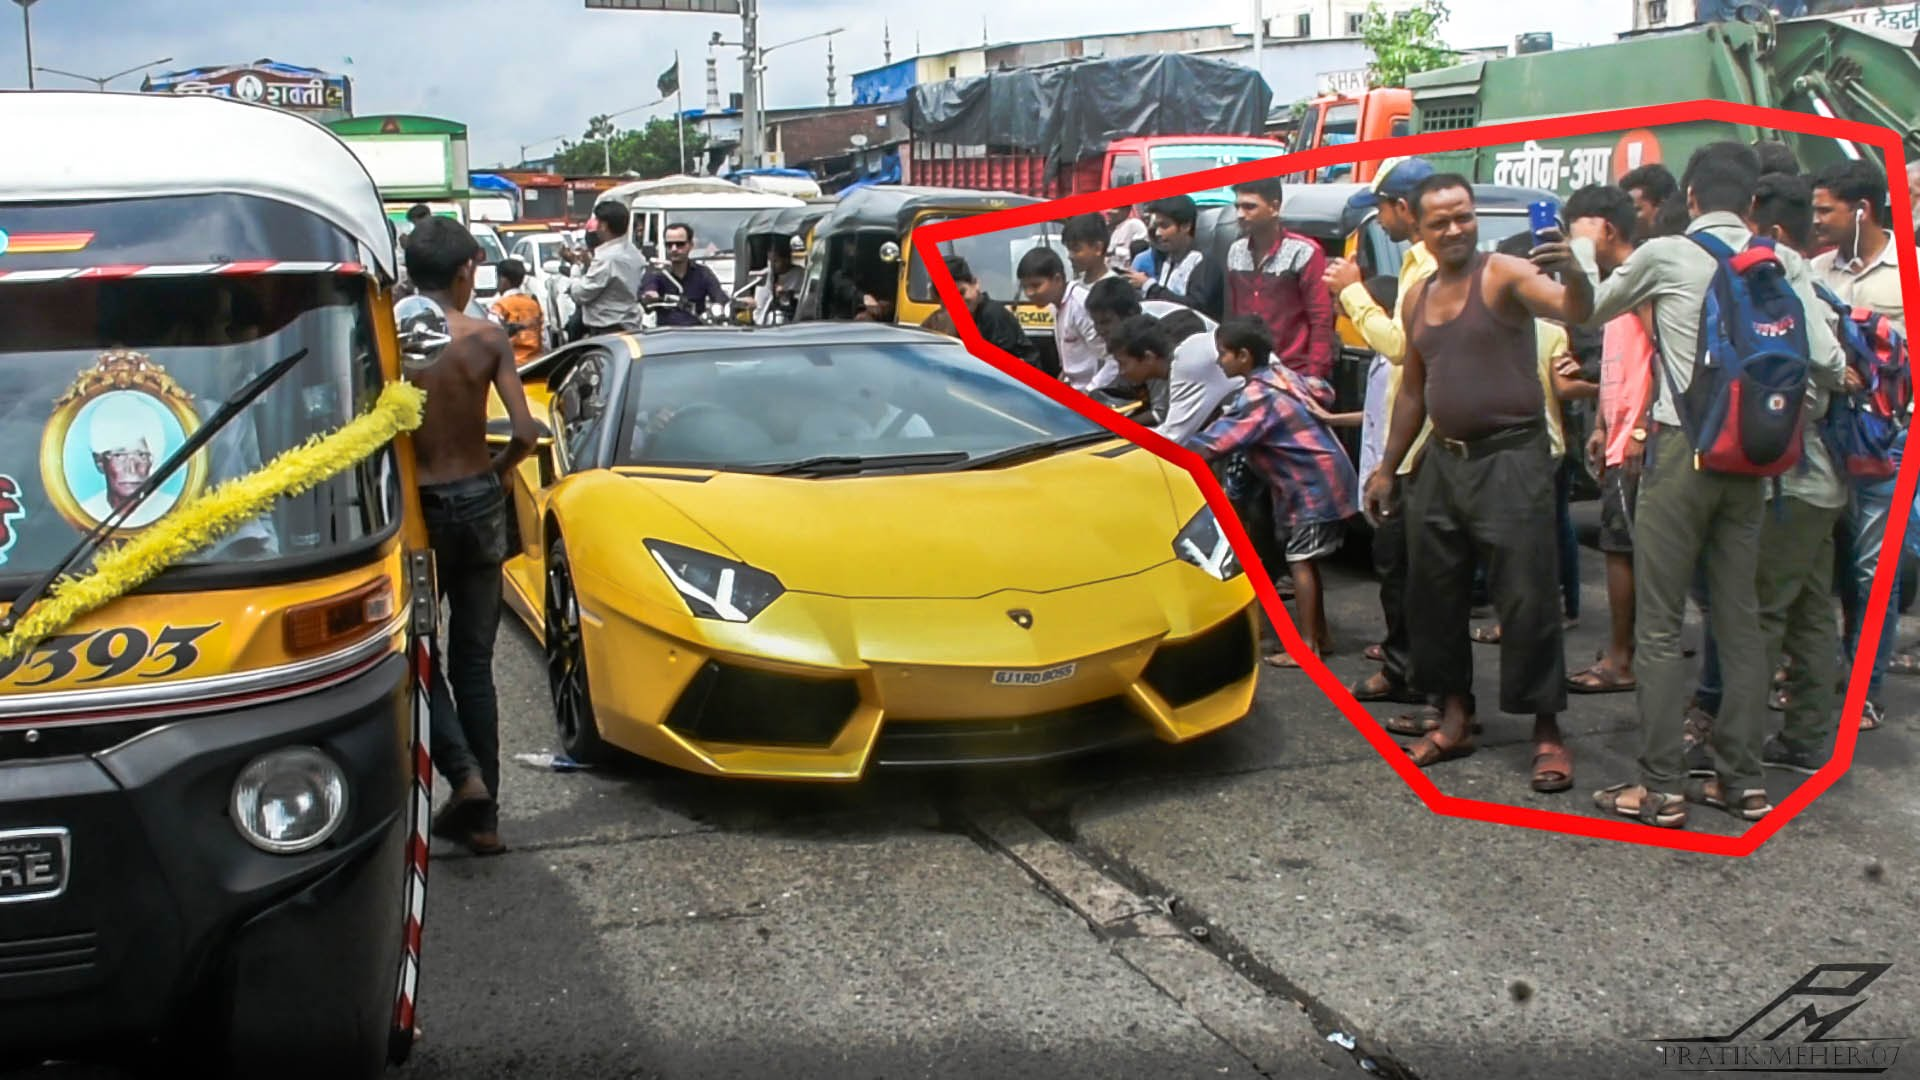 Lamborghini Cars On Indian Roads Interesting Funny Images